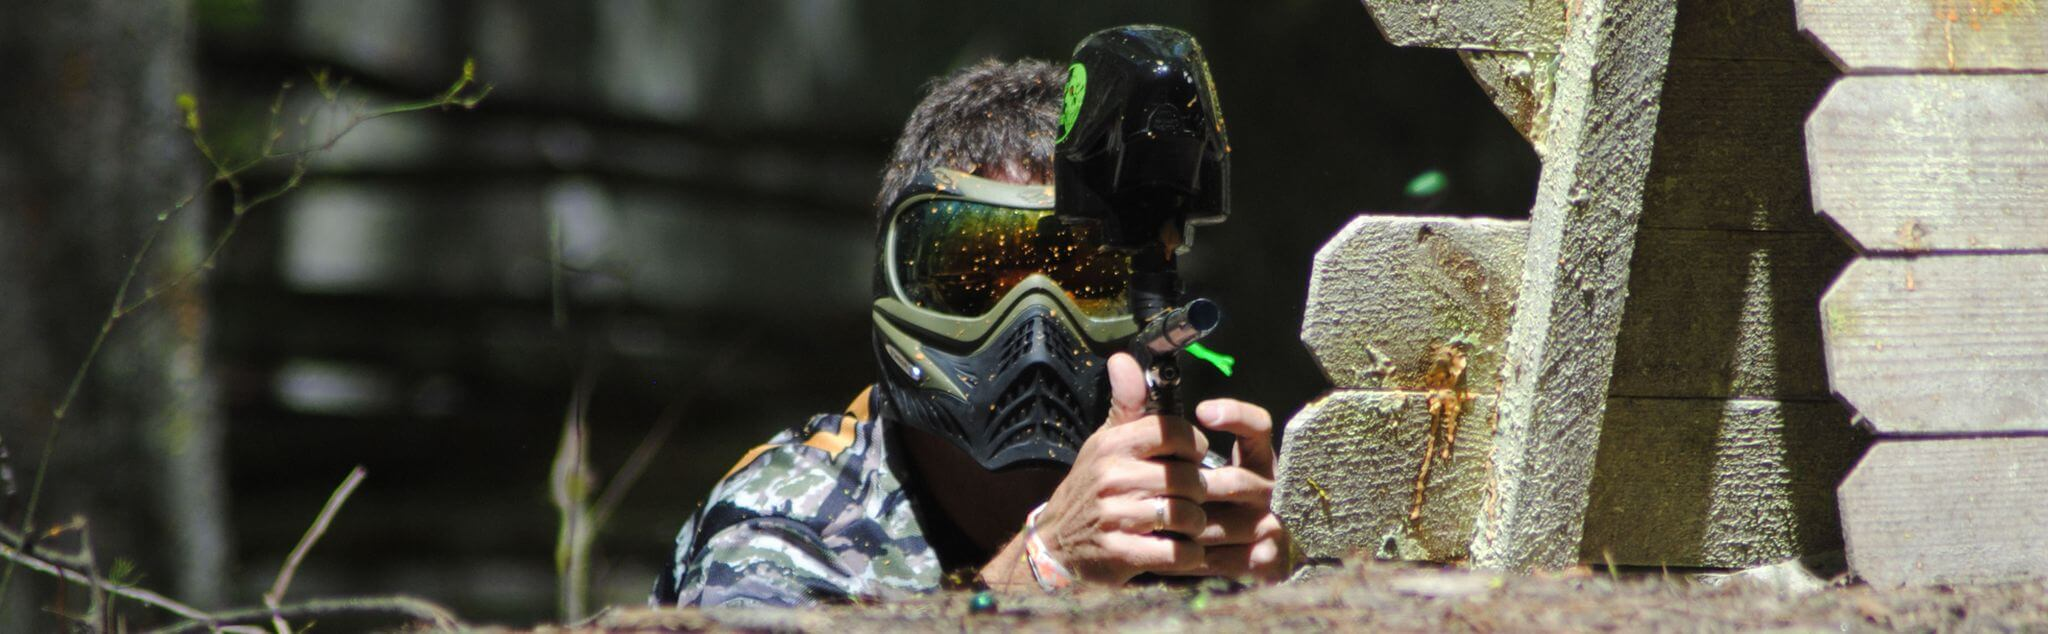 Paintball a Crotone